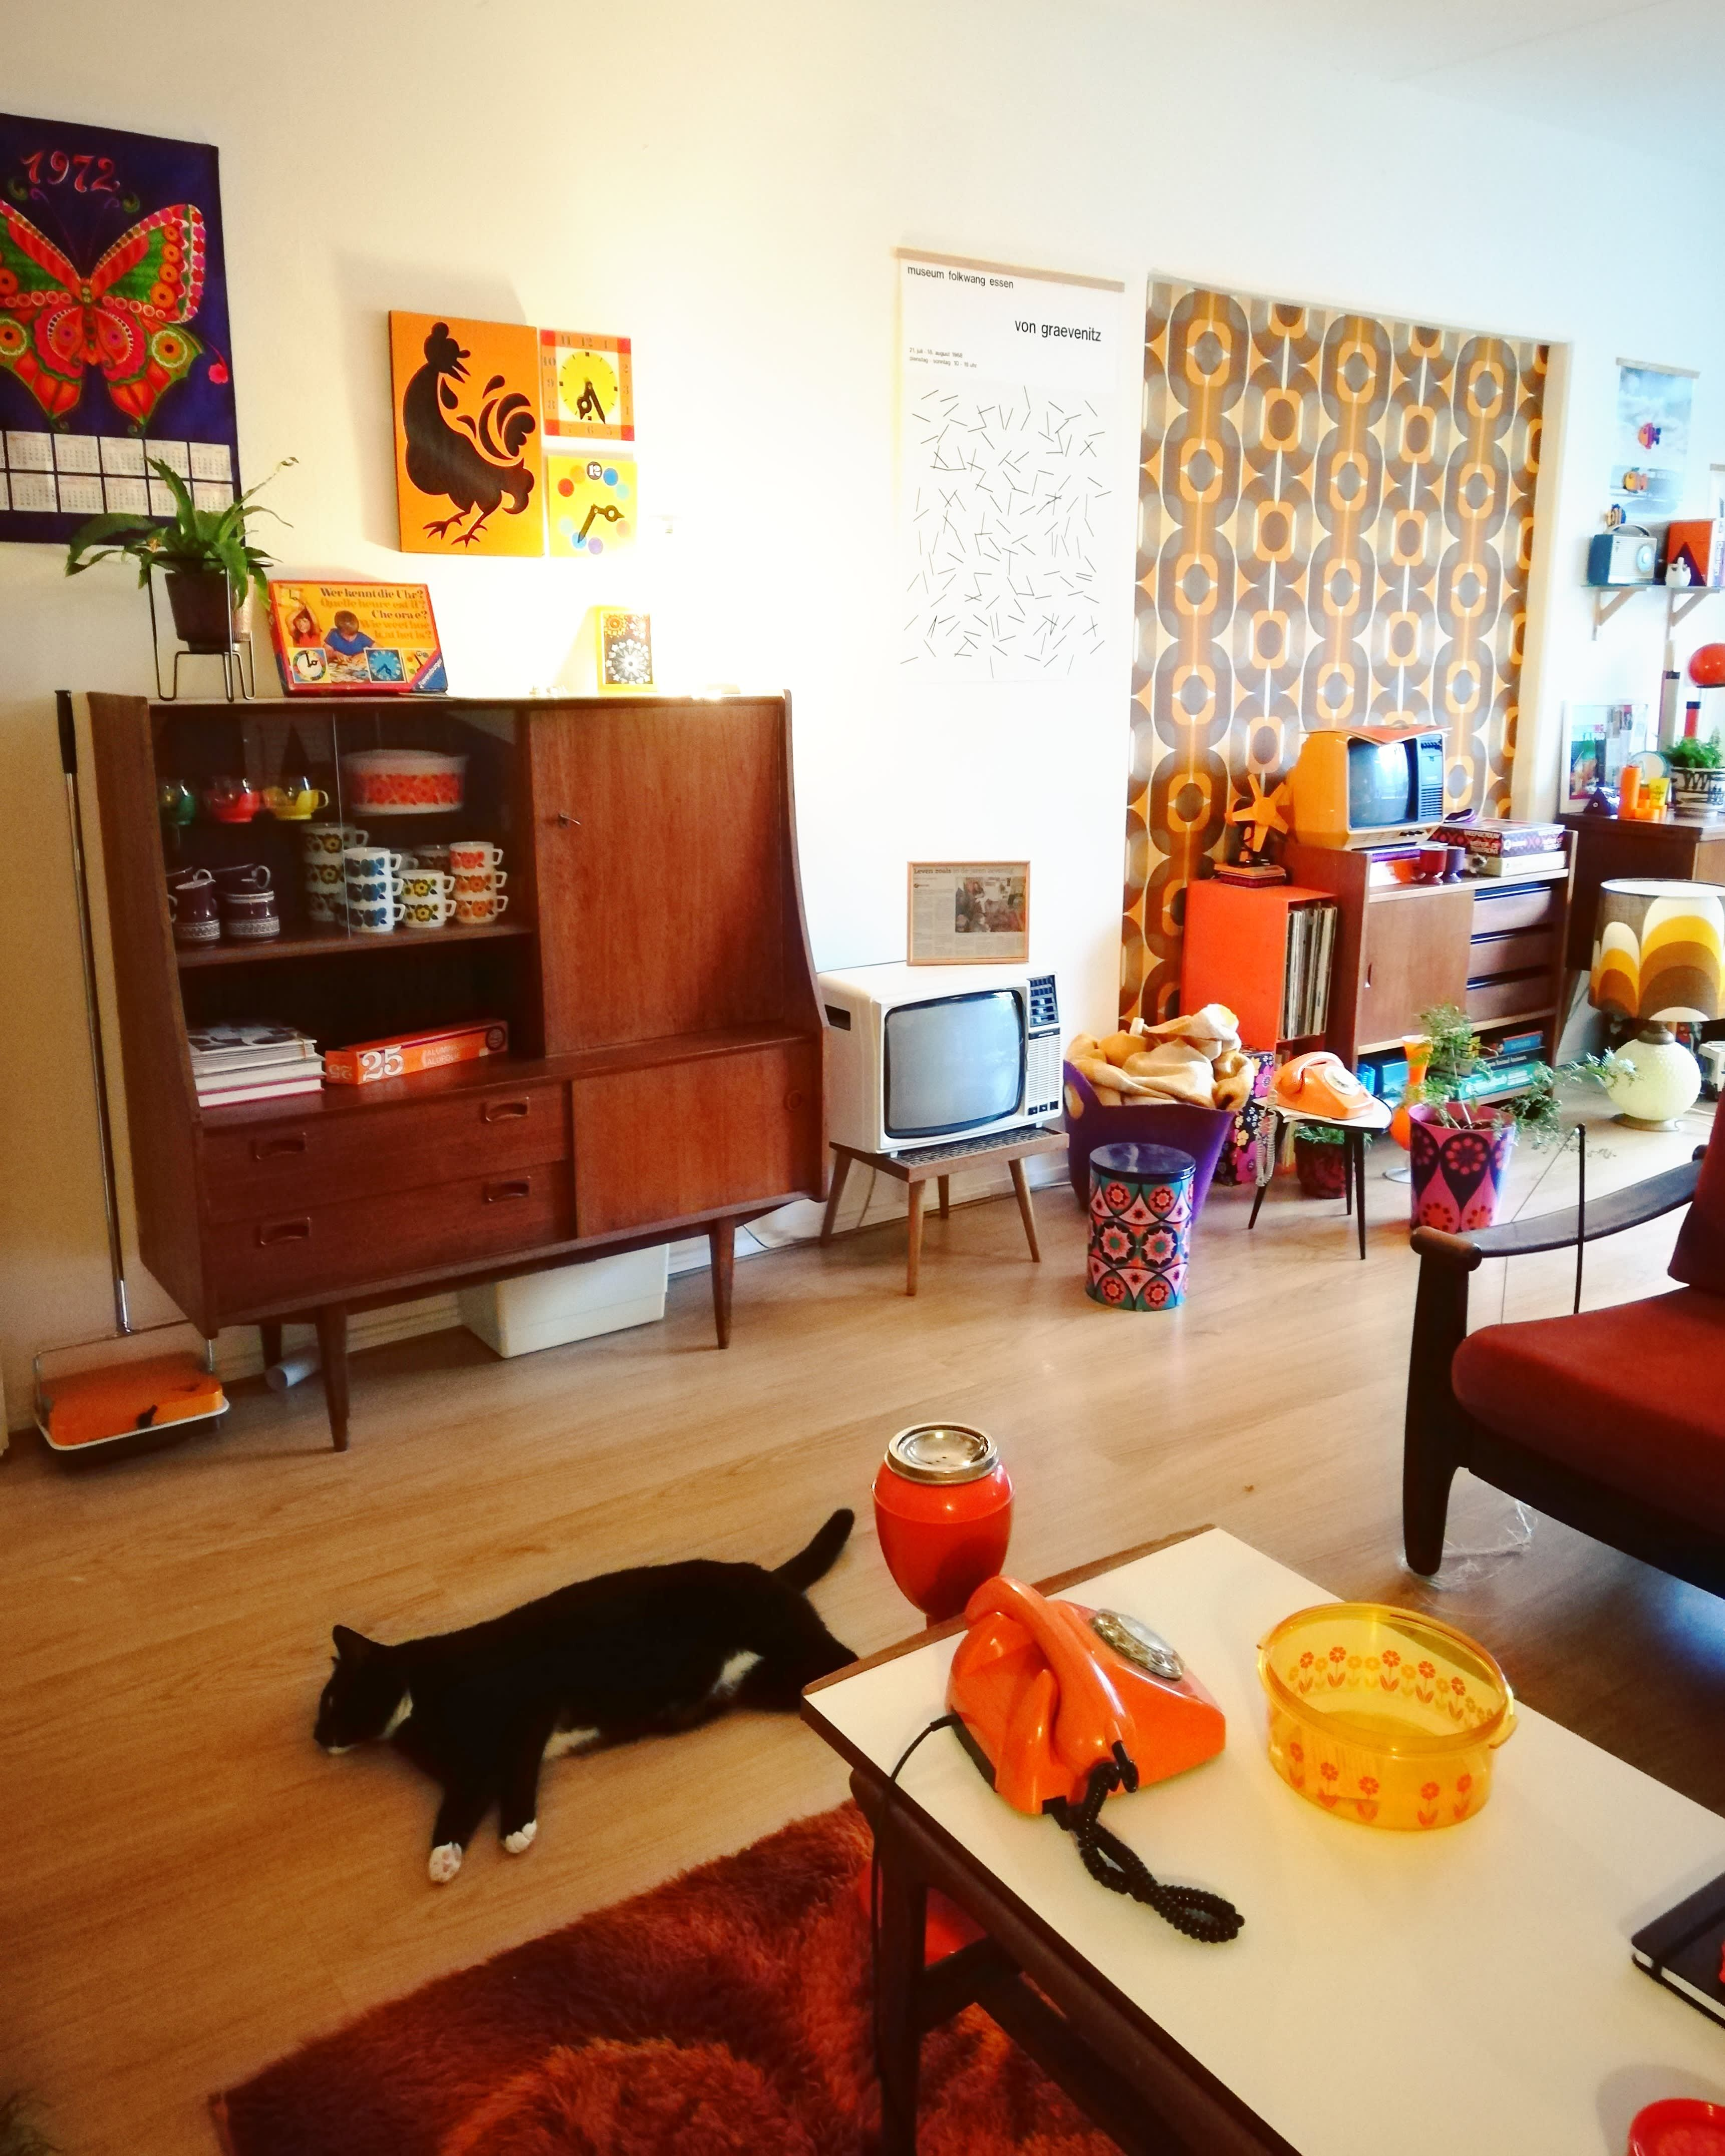 This Dutch Home Is Like Stepping Onto The Set Of That 70s Show 70s Home Decor Retro Apartment 60s Home Decor